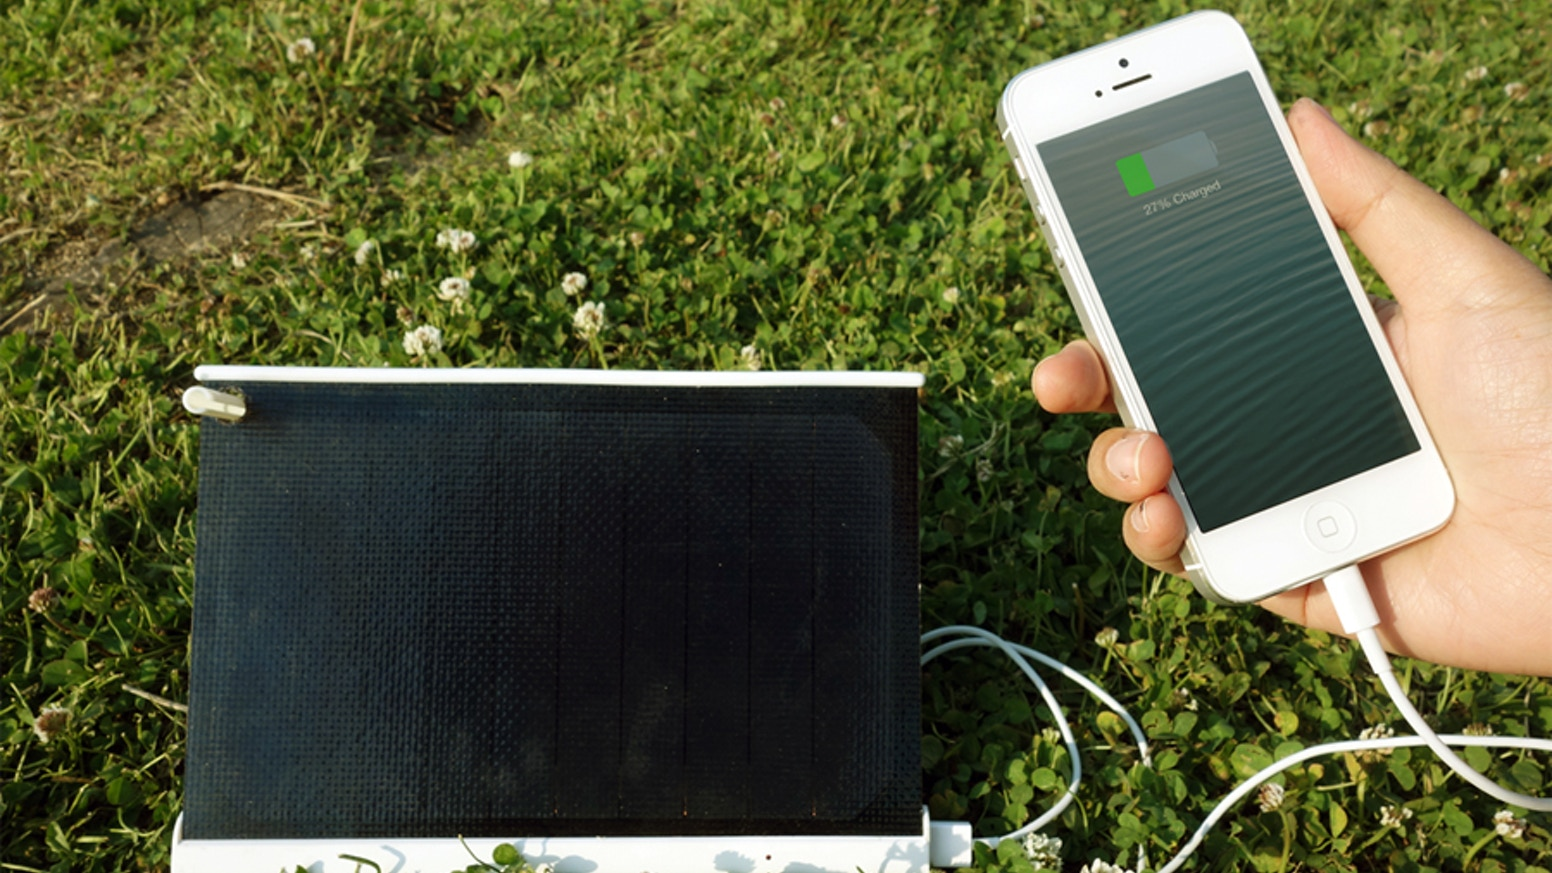 Charge your iPhone battery 100% in 2 hours of sun light. It also charges gopro, external battery, flash light and many other devices.